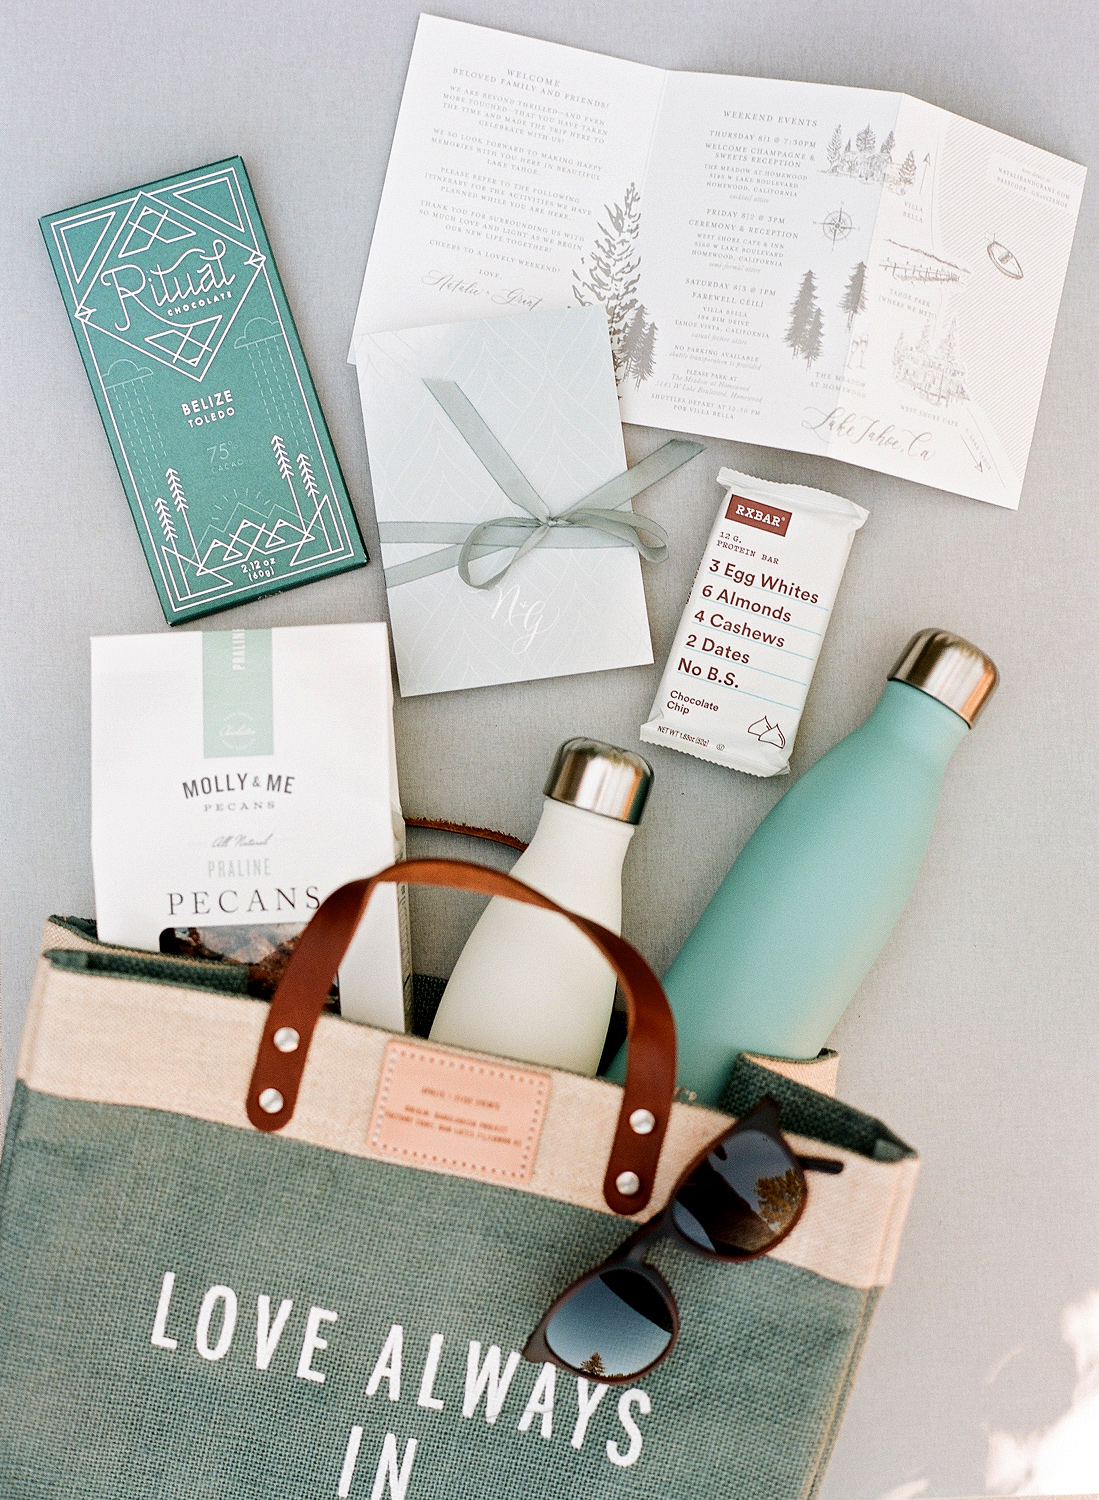 Natalie and Grant wedding welcome bags with totes, sunglasses and treats